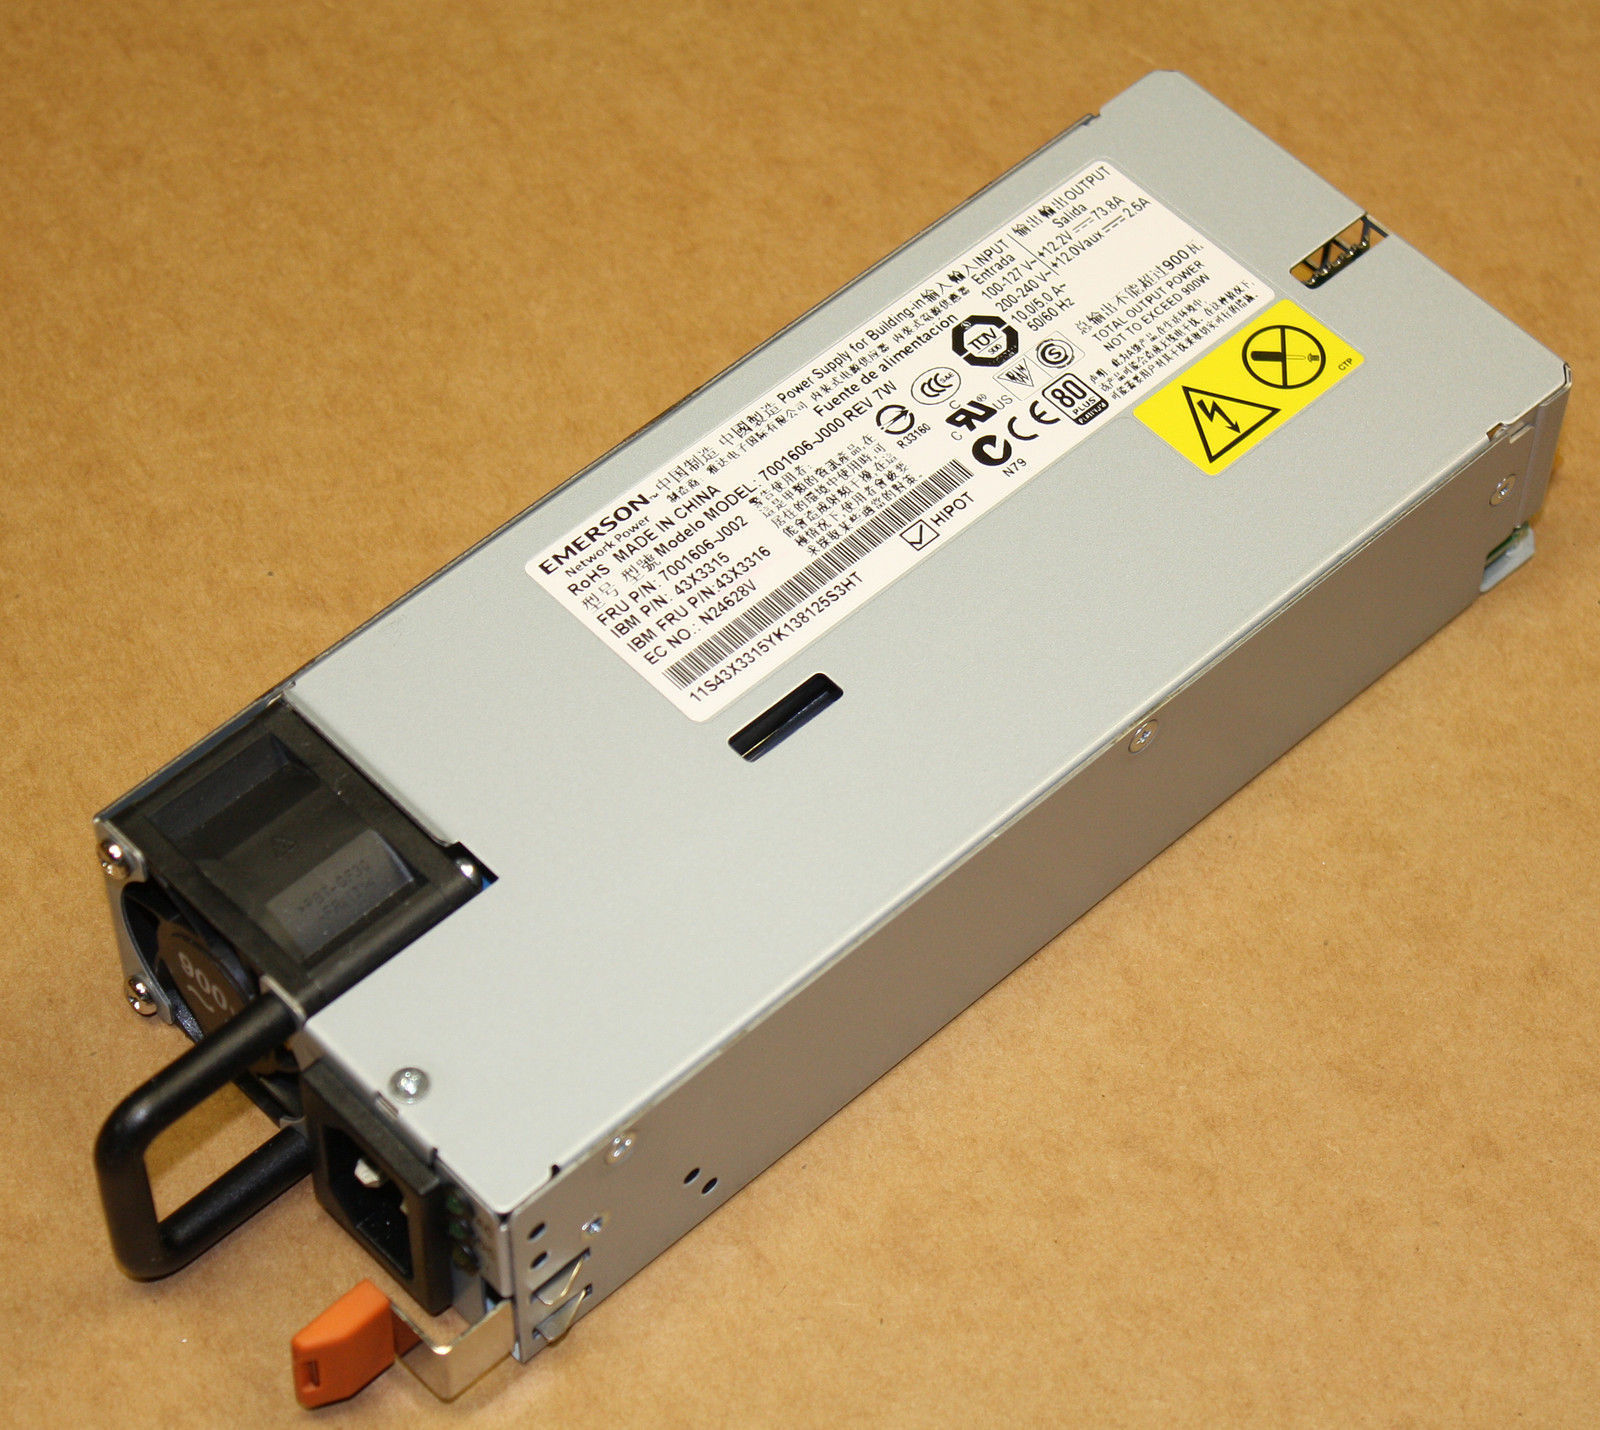 IBM 43X3316 900W High Efficiency H E Hot Swap Power Supply PSU For X3650 M4